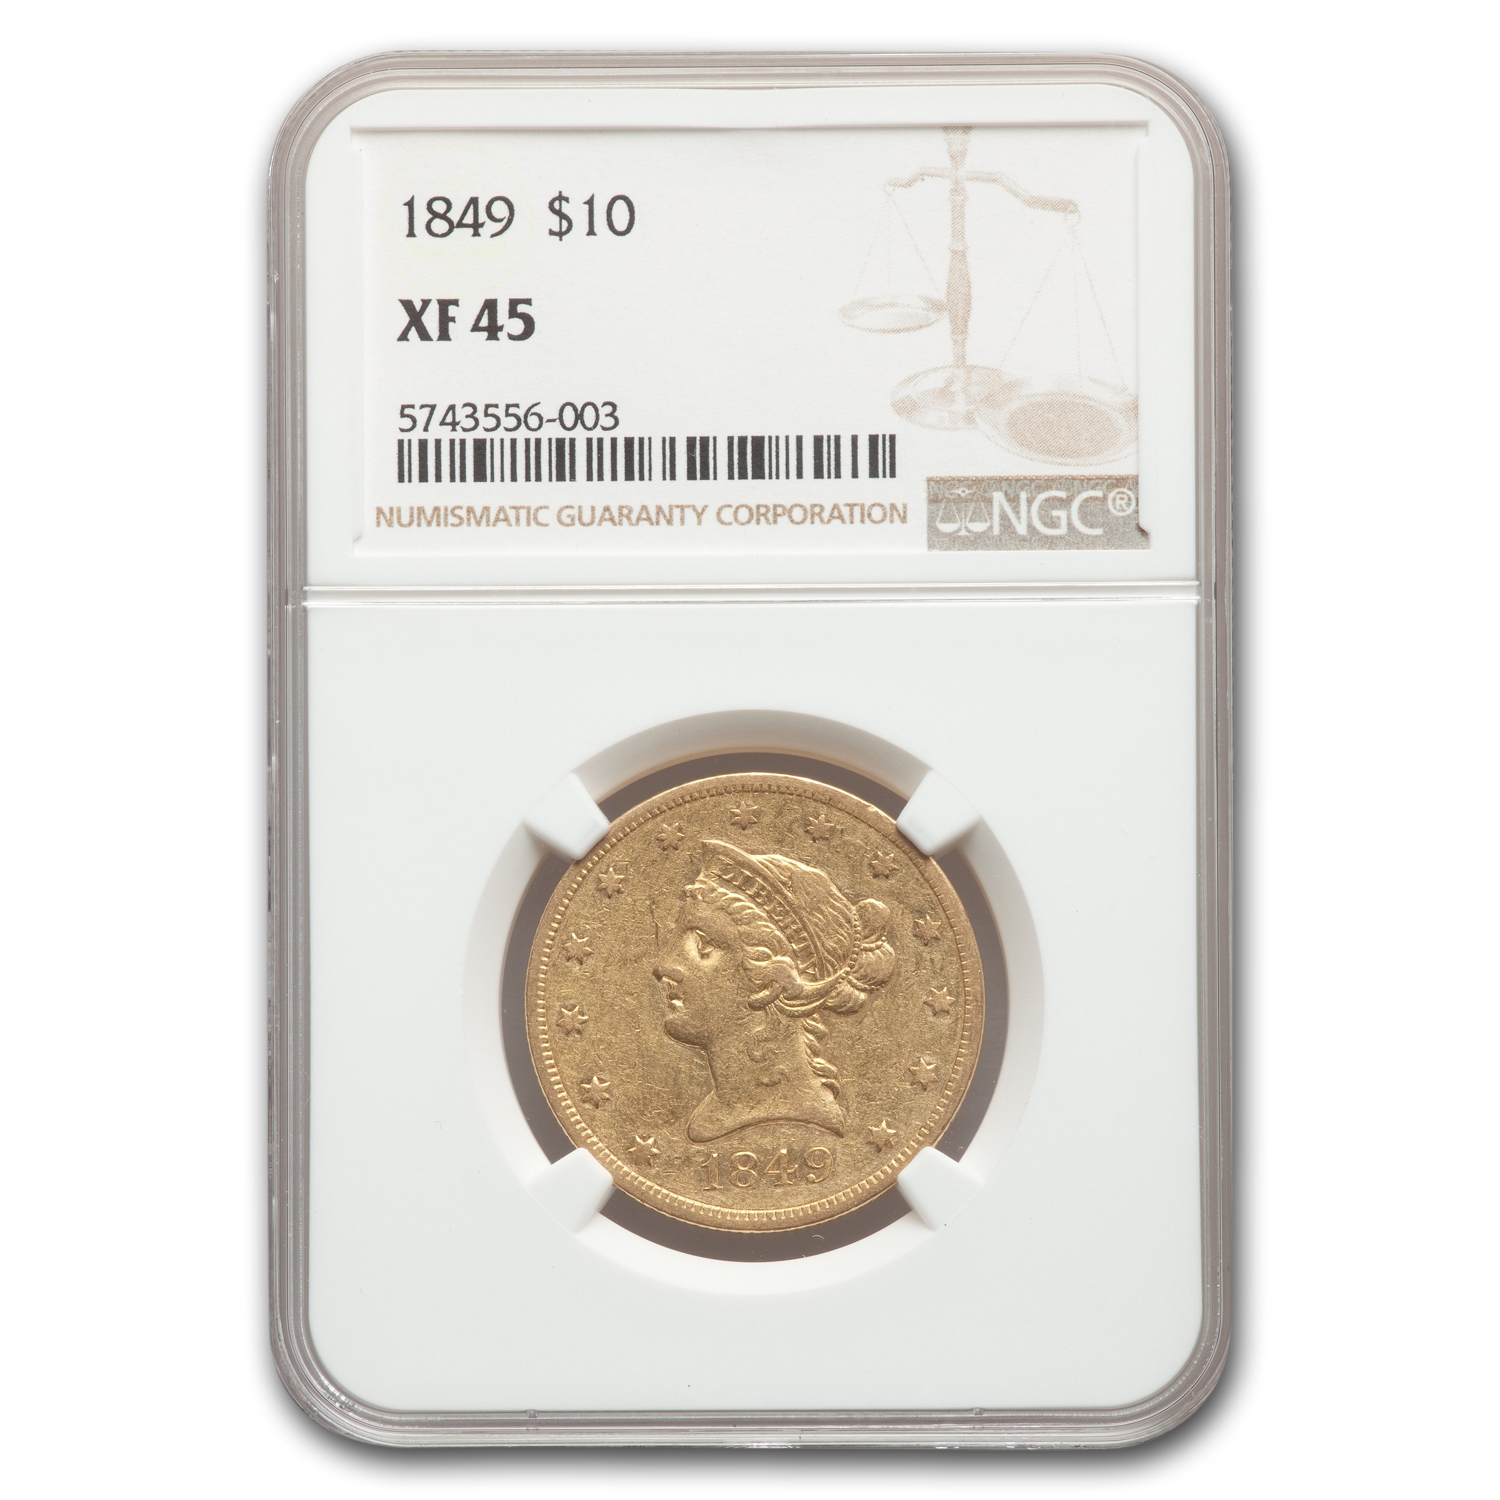 1849 $10 Liberty Gold Eagle XF-45 NGC